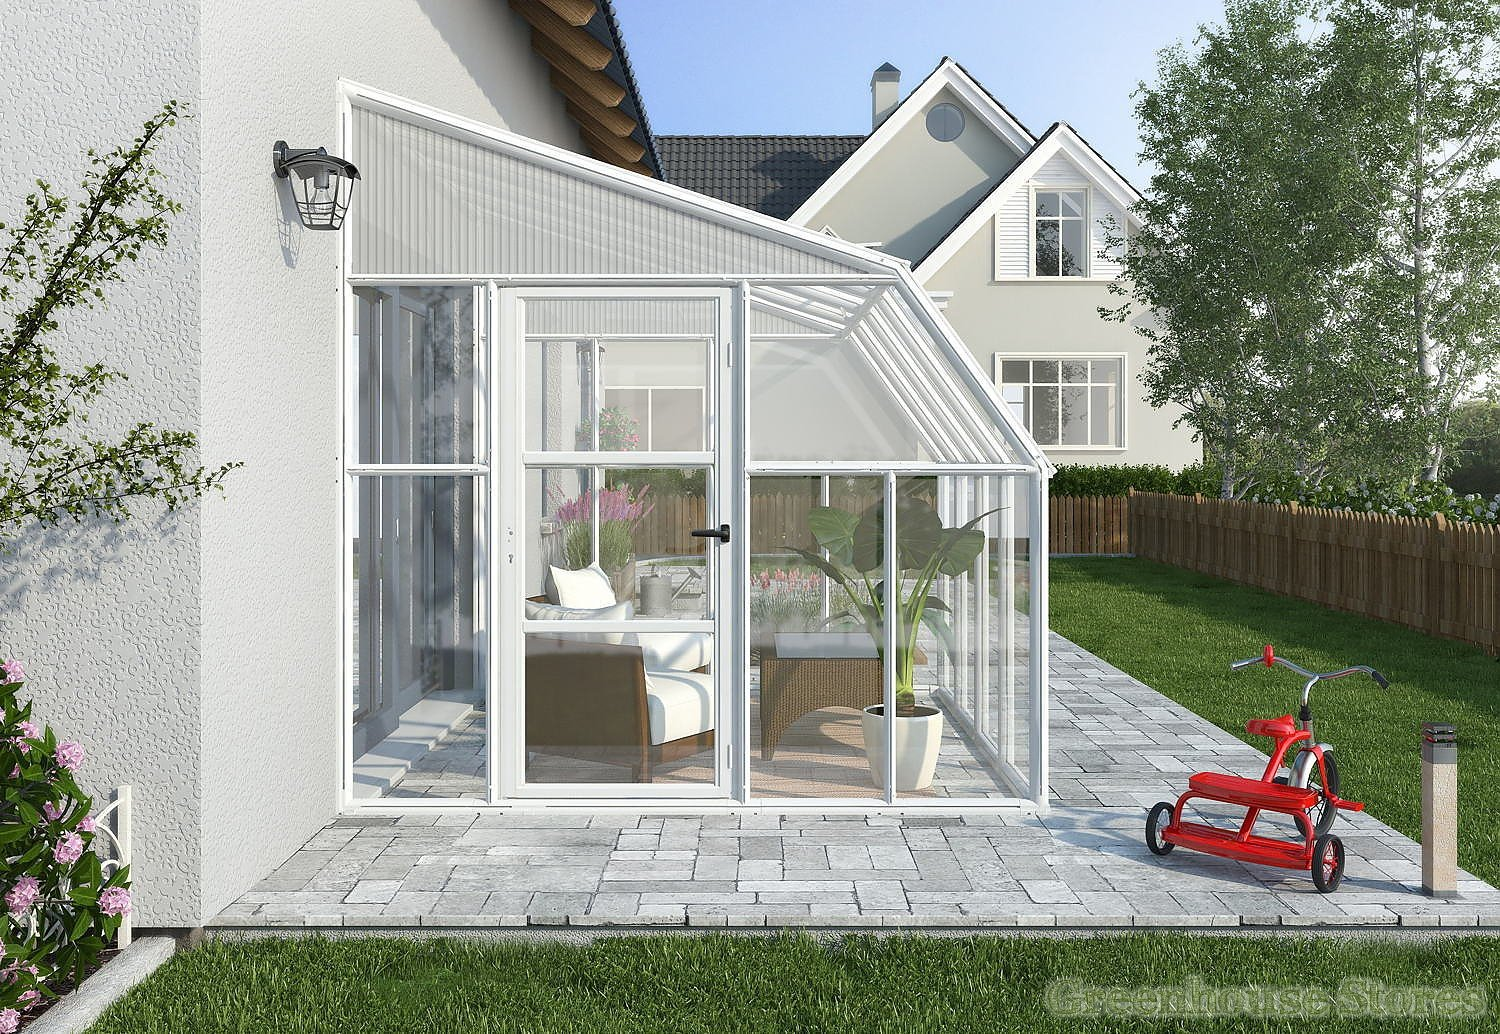 Rion sun room 8x14 lean to greenhouse polycarbonate for Solarium home